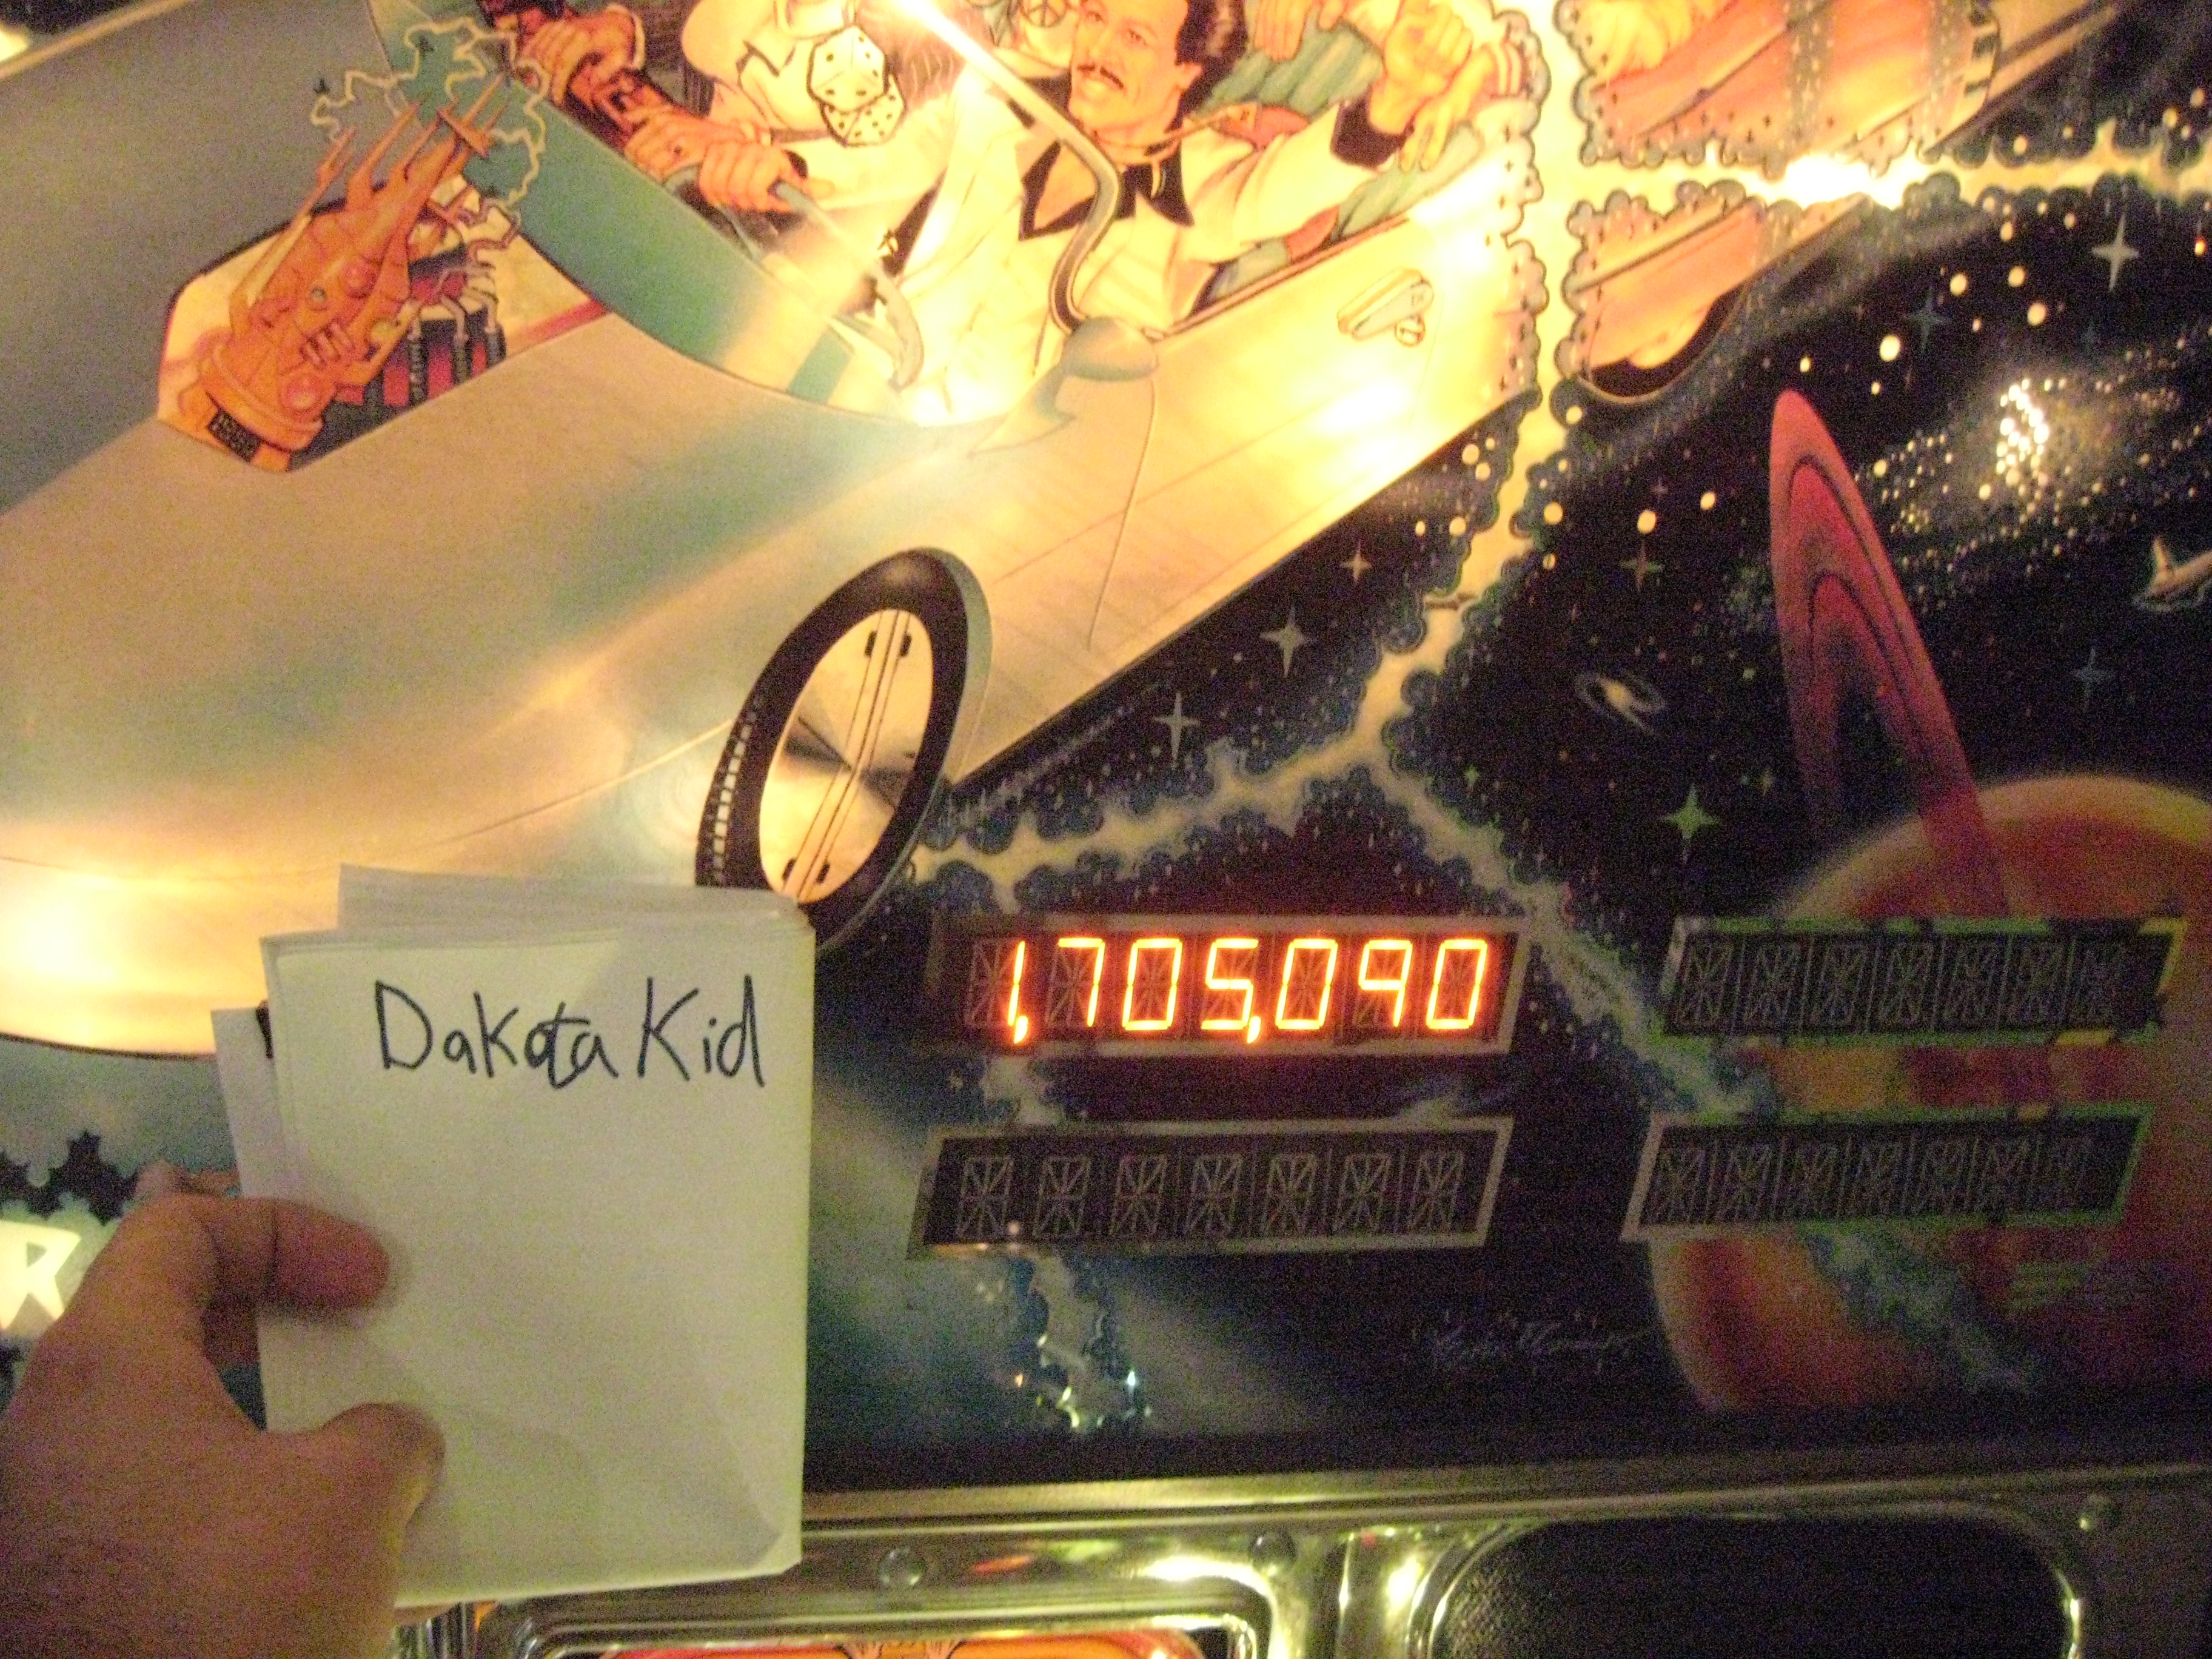 DakotaKid: Time Machine (Pinball: 3 Balls) 1,705,090 points on 2015-09-06 15:08:52